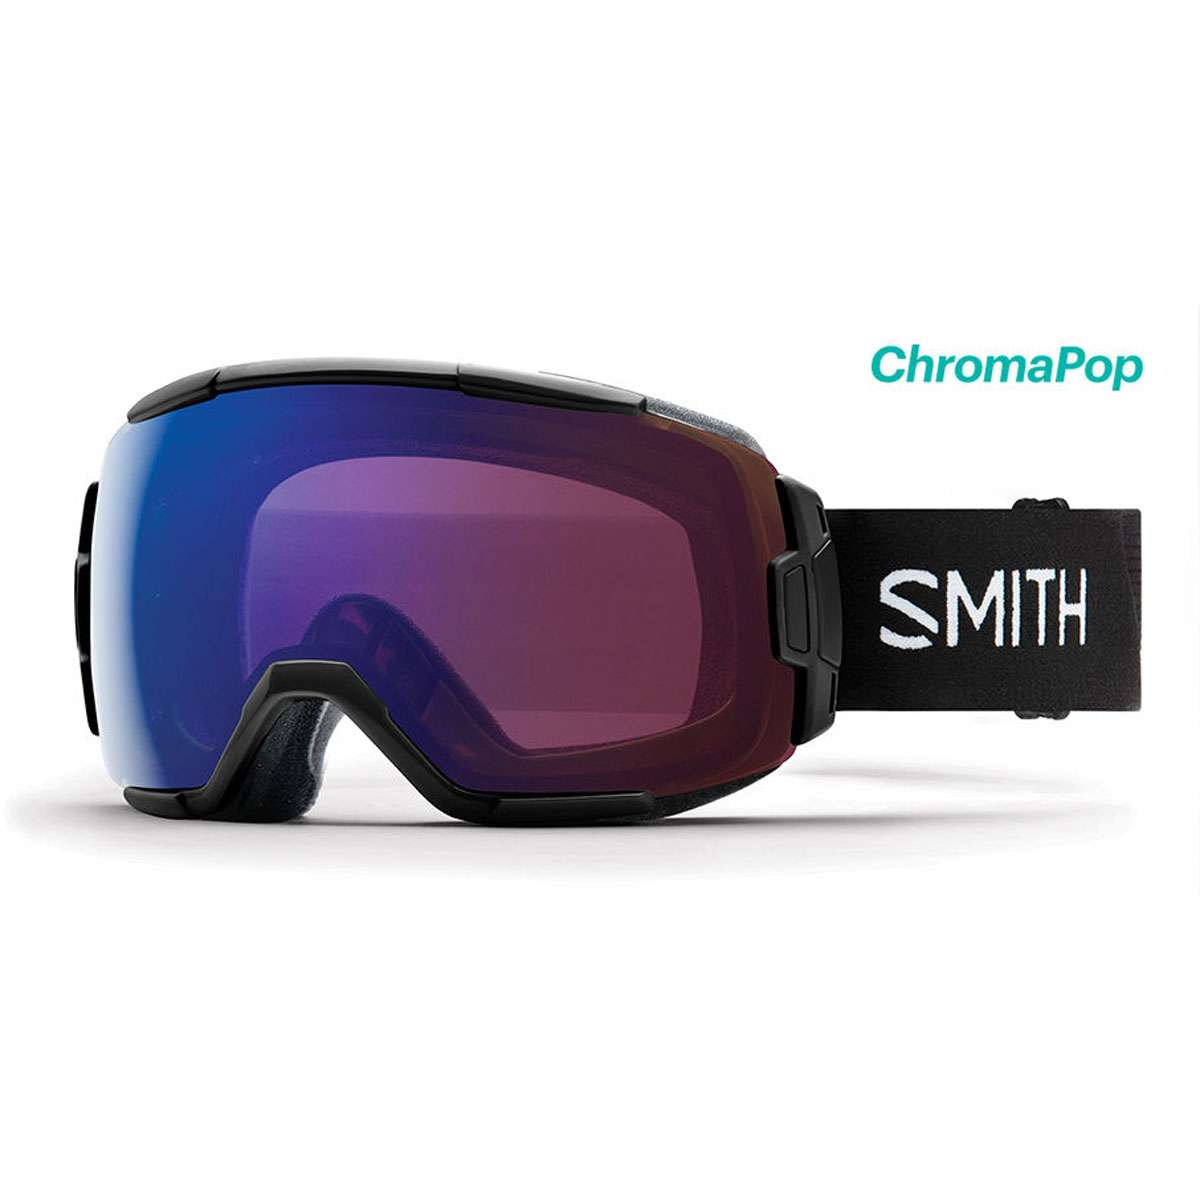 629caf127d96e Smith Optics 2019 Men s Vice Ski Goggle - Black Frame ChromaPop  Photochromic Rose Flash Lens - VC6CPZBK19